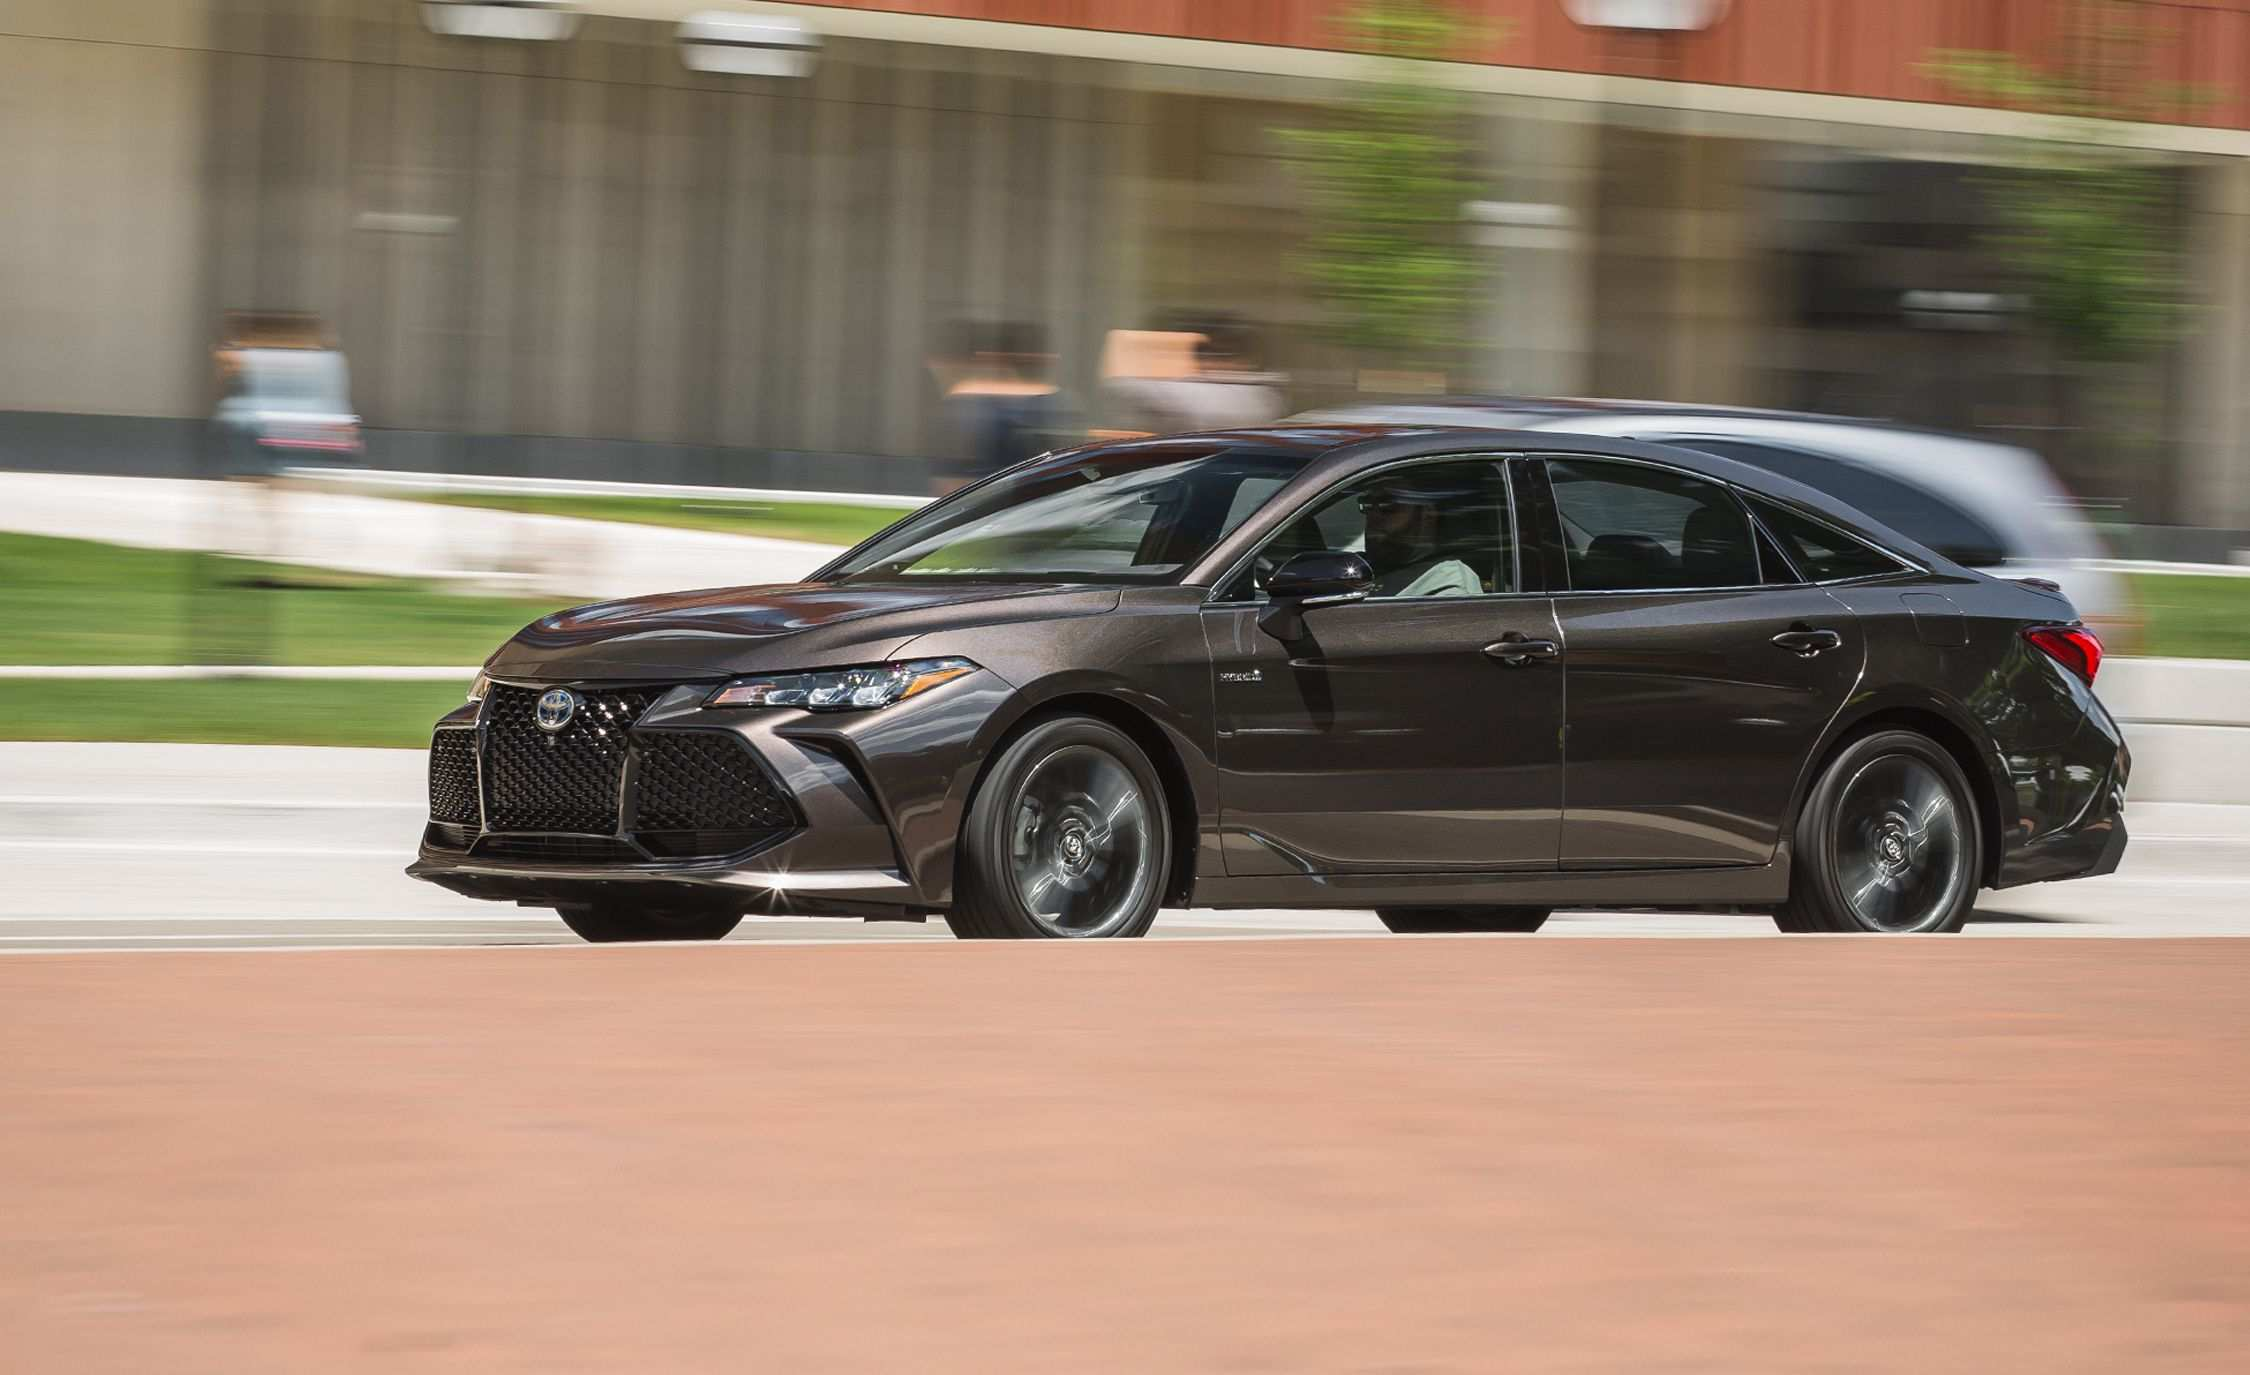 24 New 2019 Toyota Avalon Xse New Concept for 2019 Toyota Avalon Xse